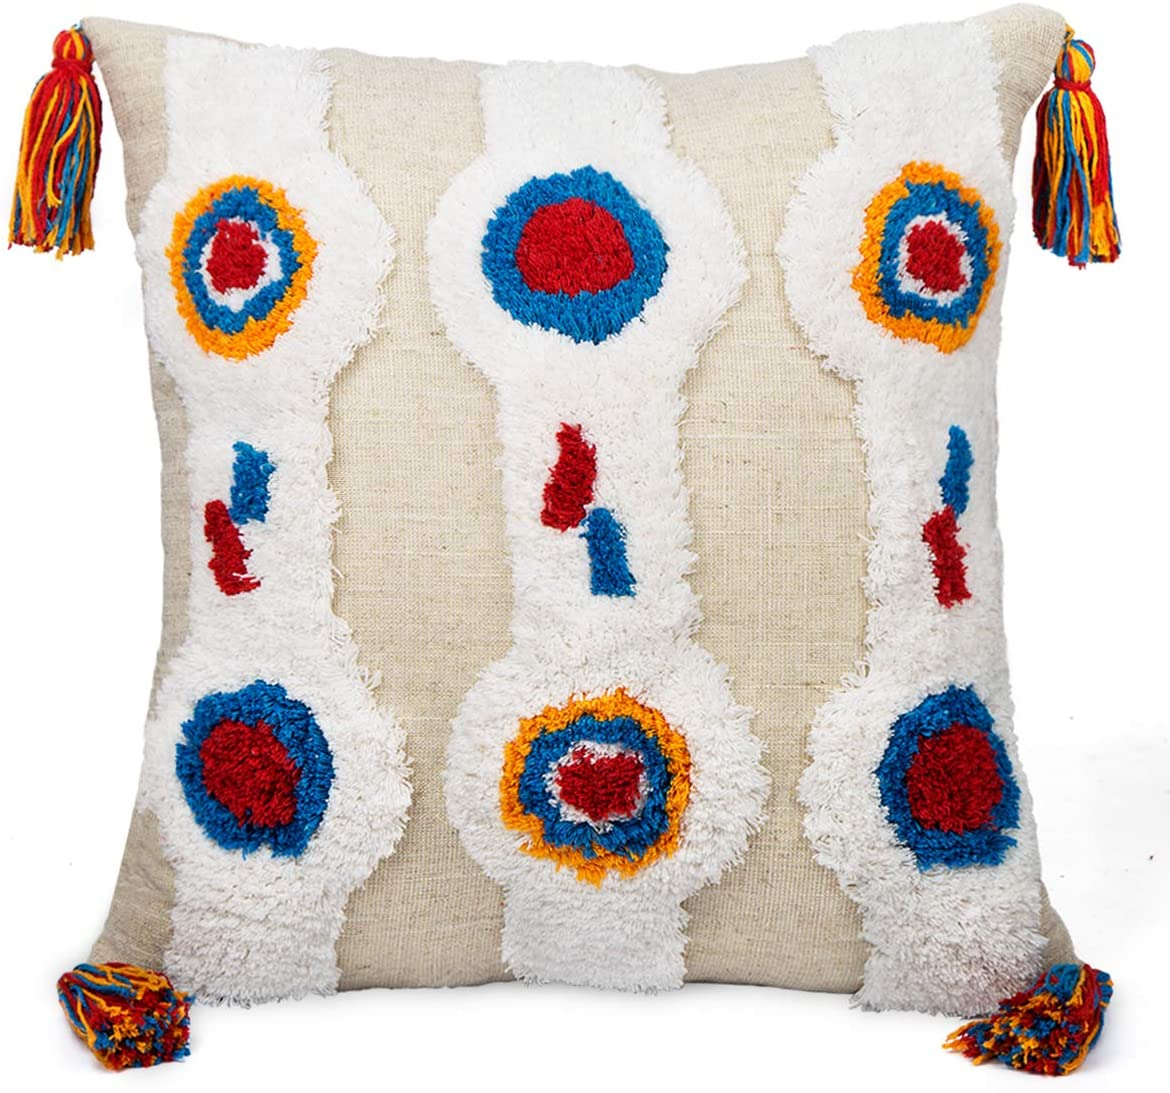 Leisury Boho Tufted Throw Pillow Cover, 18x18 Inches Handwoven Stripes Linen Cotton Tassels Cushion Case for Couch Sofa Bedroom Living Room Nursery Décor